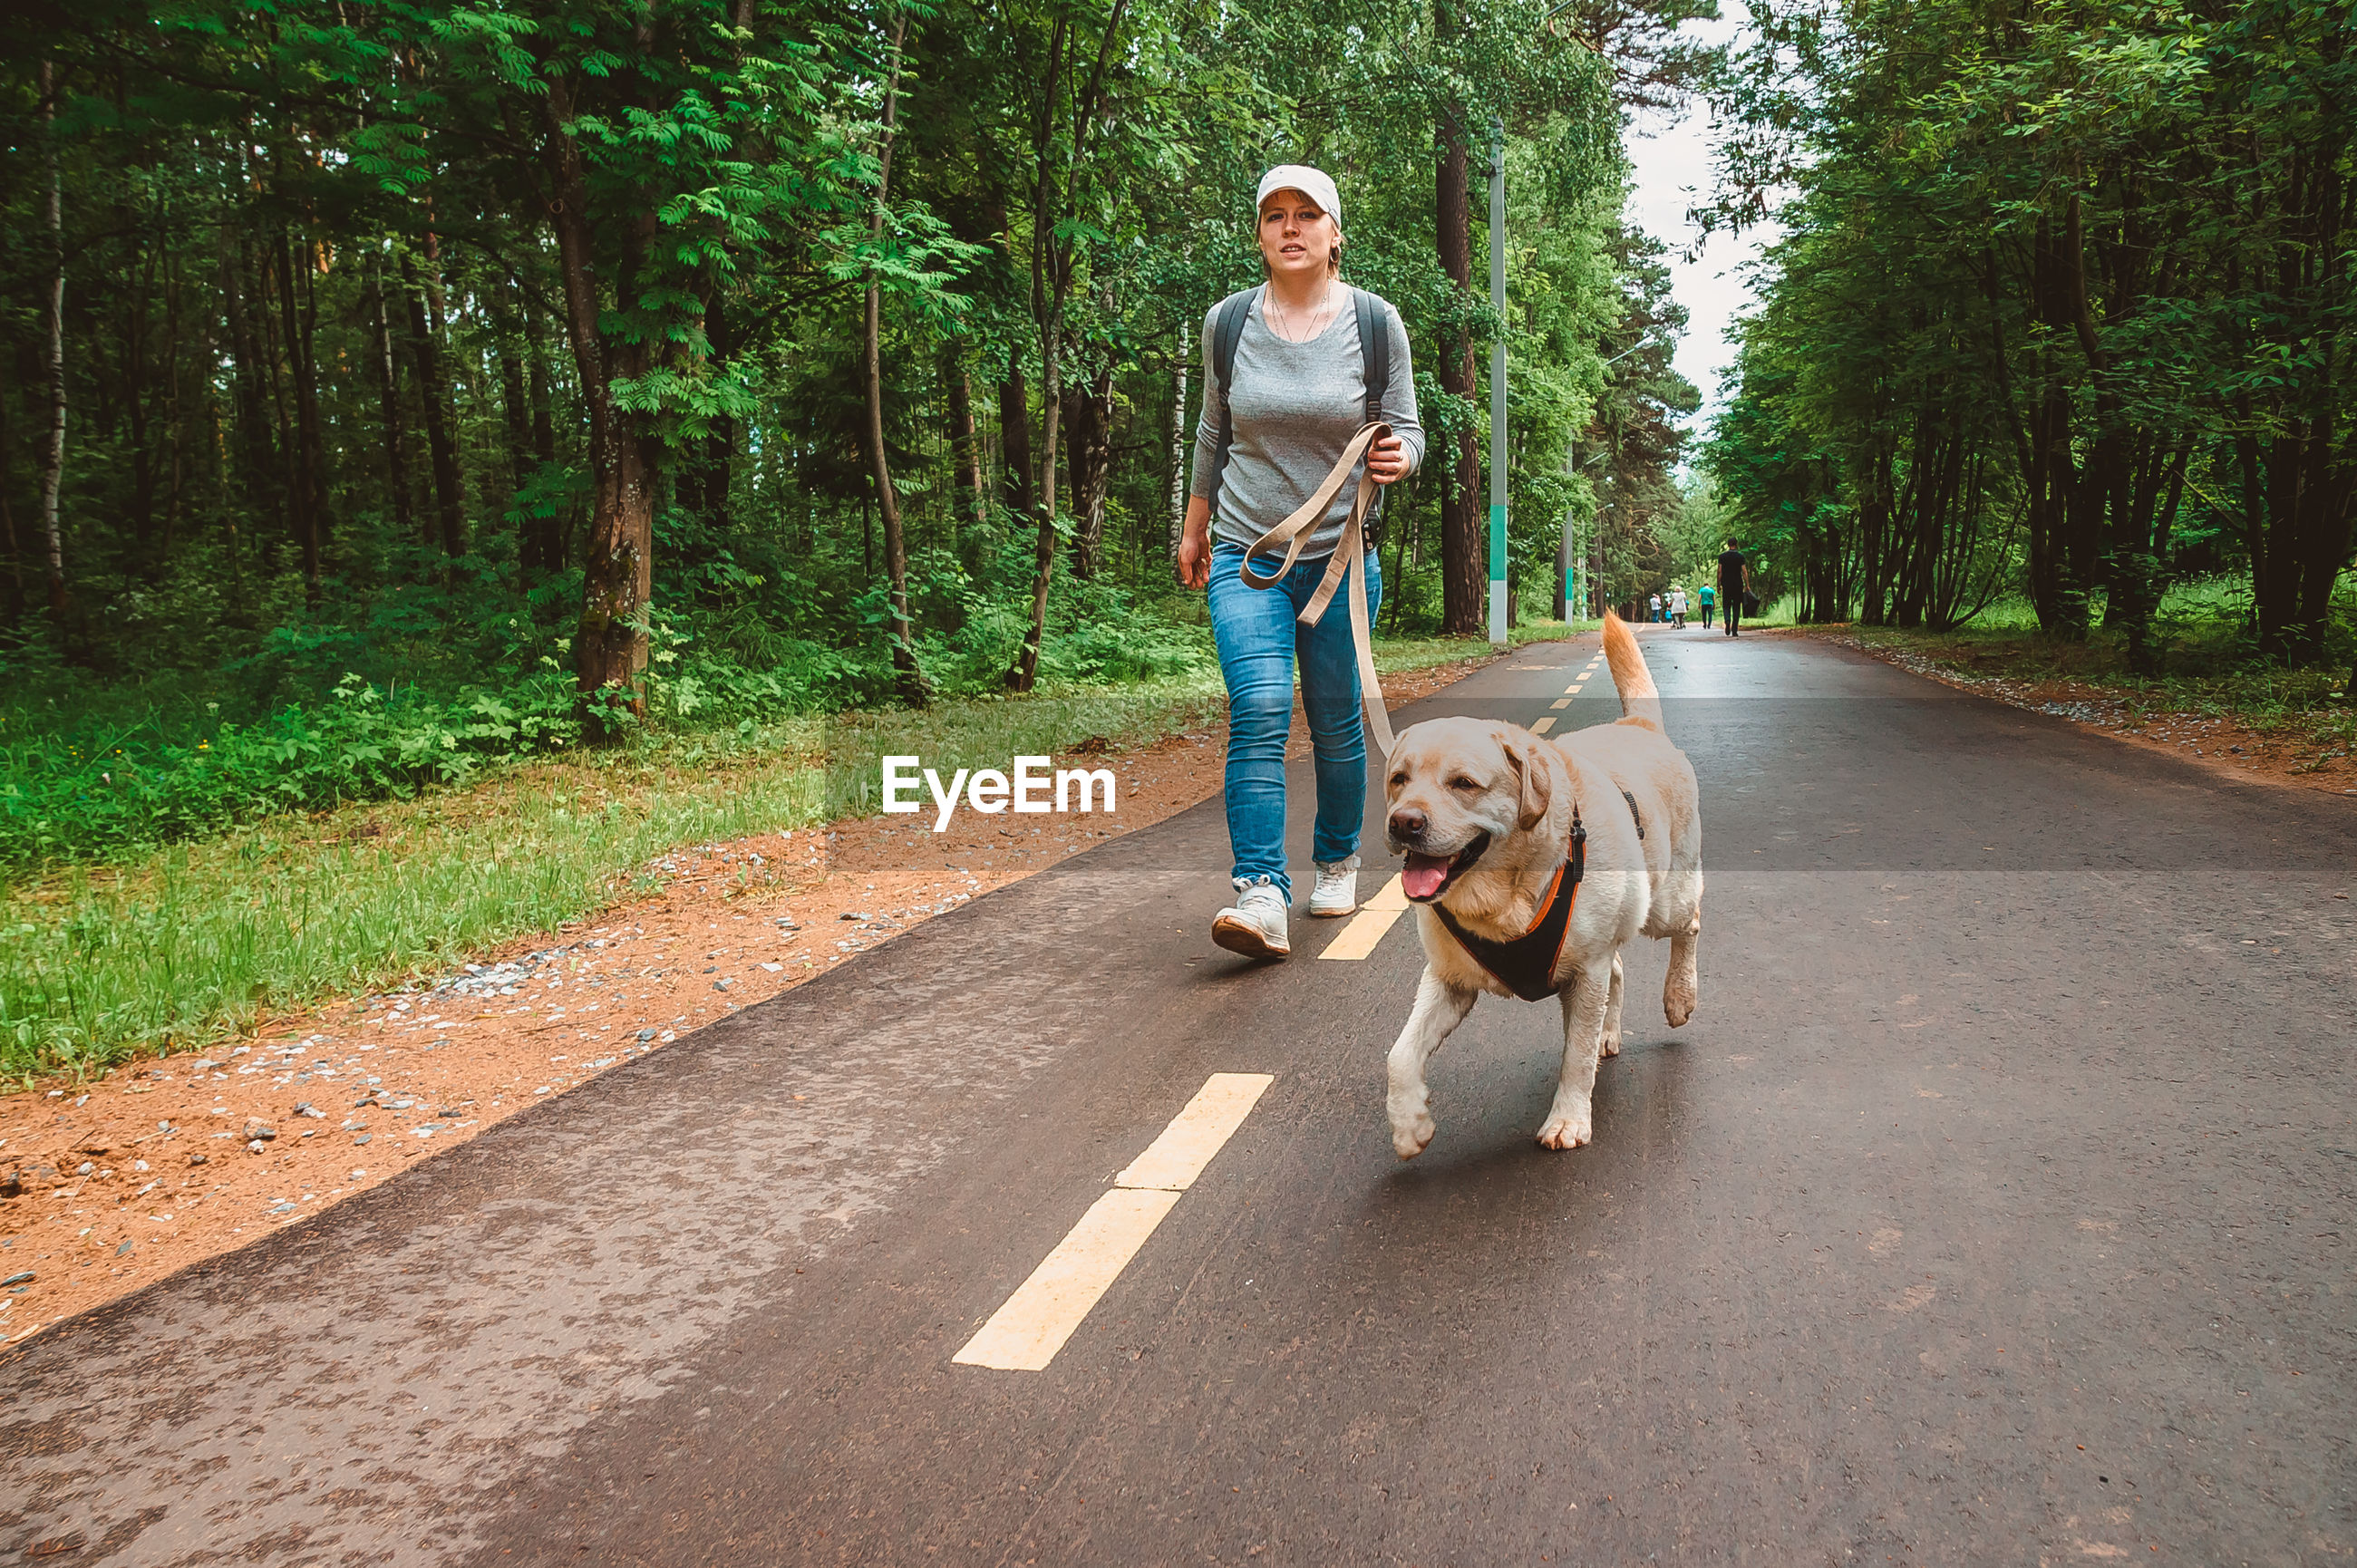 A girl with a dog runs in the park for a walk. sports with a labrador in nature